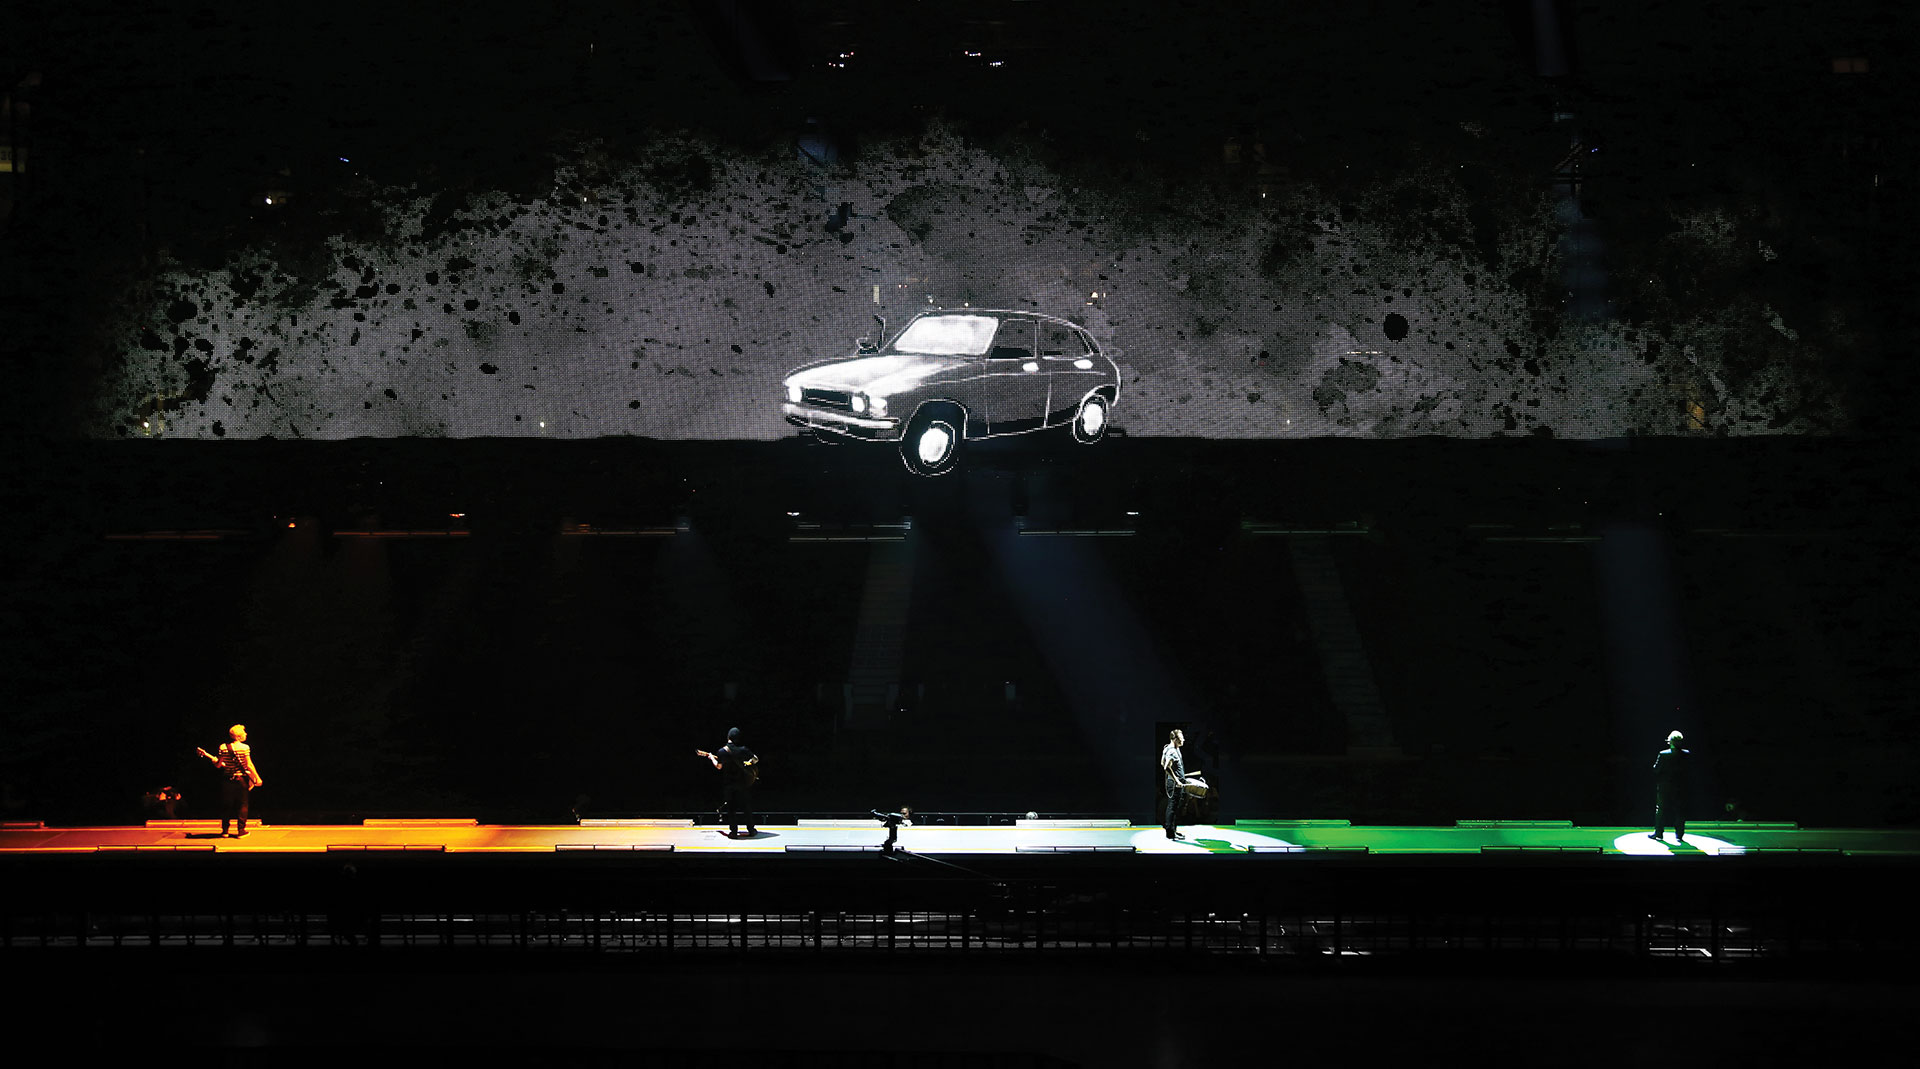 Tour visuals created by Oliver Jeffers for U2's Innocence + Experience tour in 2015